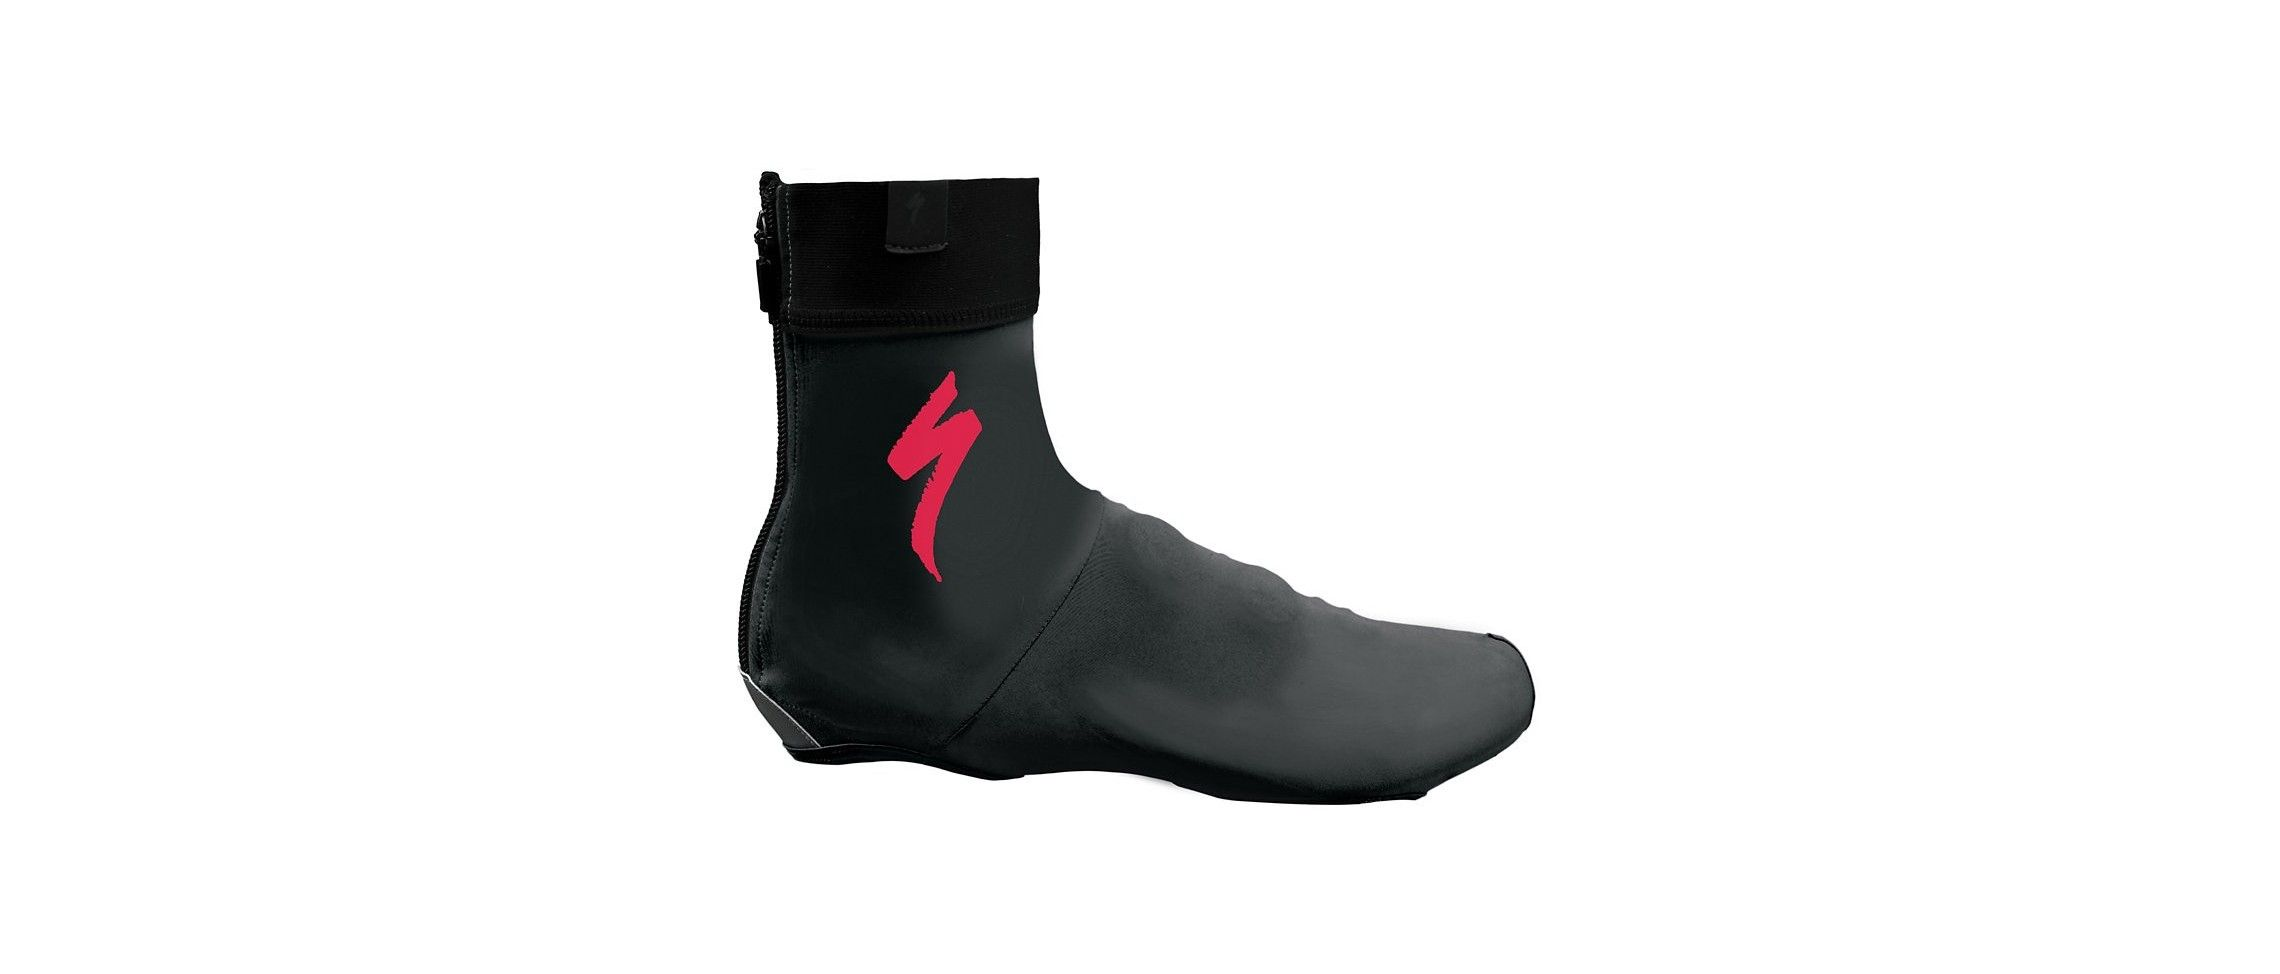 SHOE COVER S LOGO BLK ACDRED M